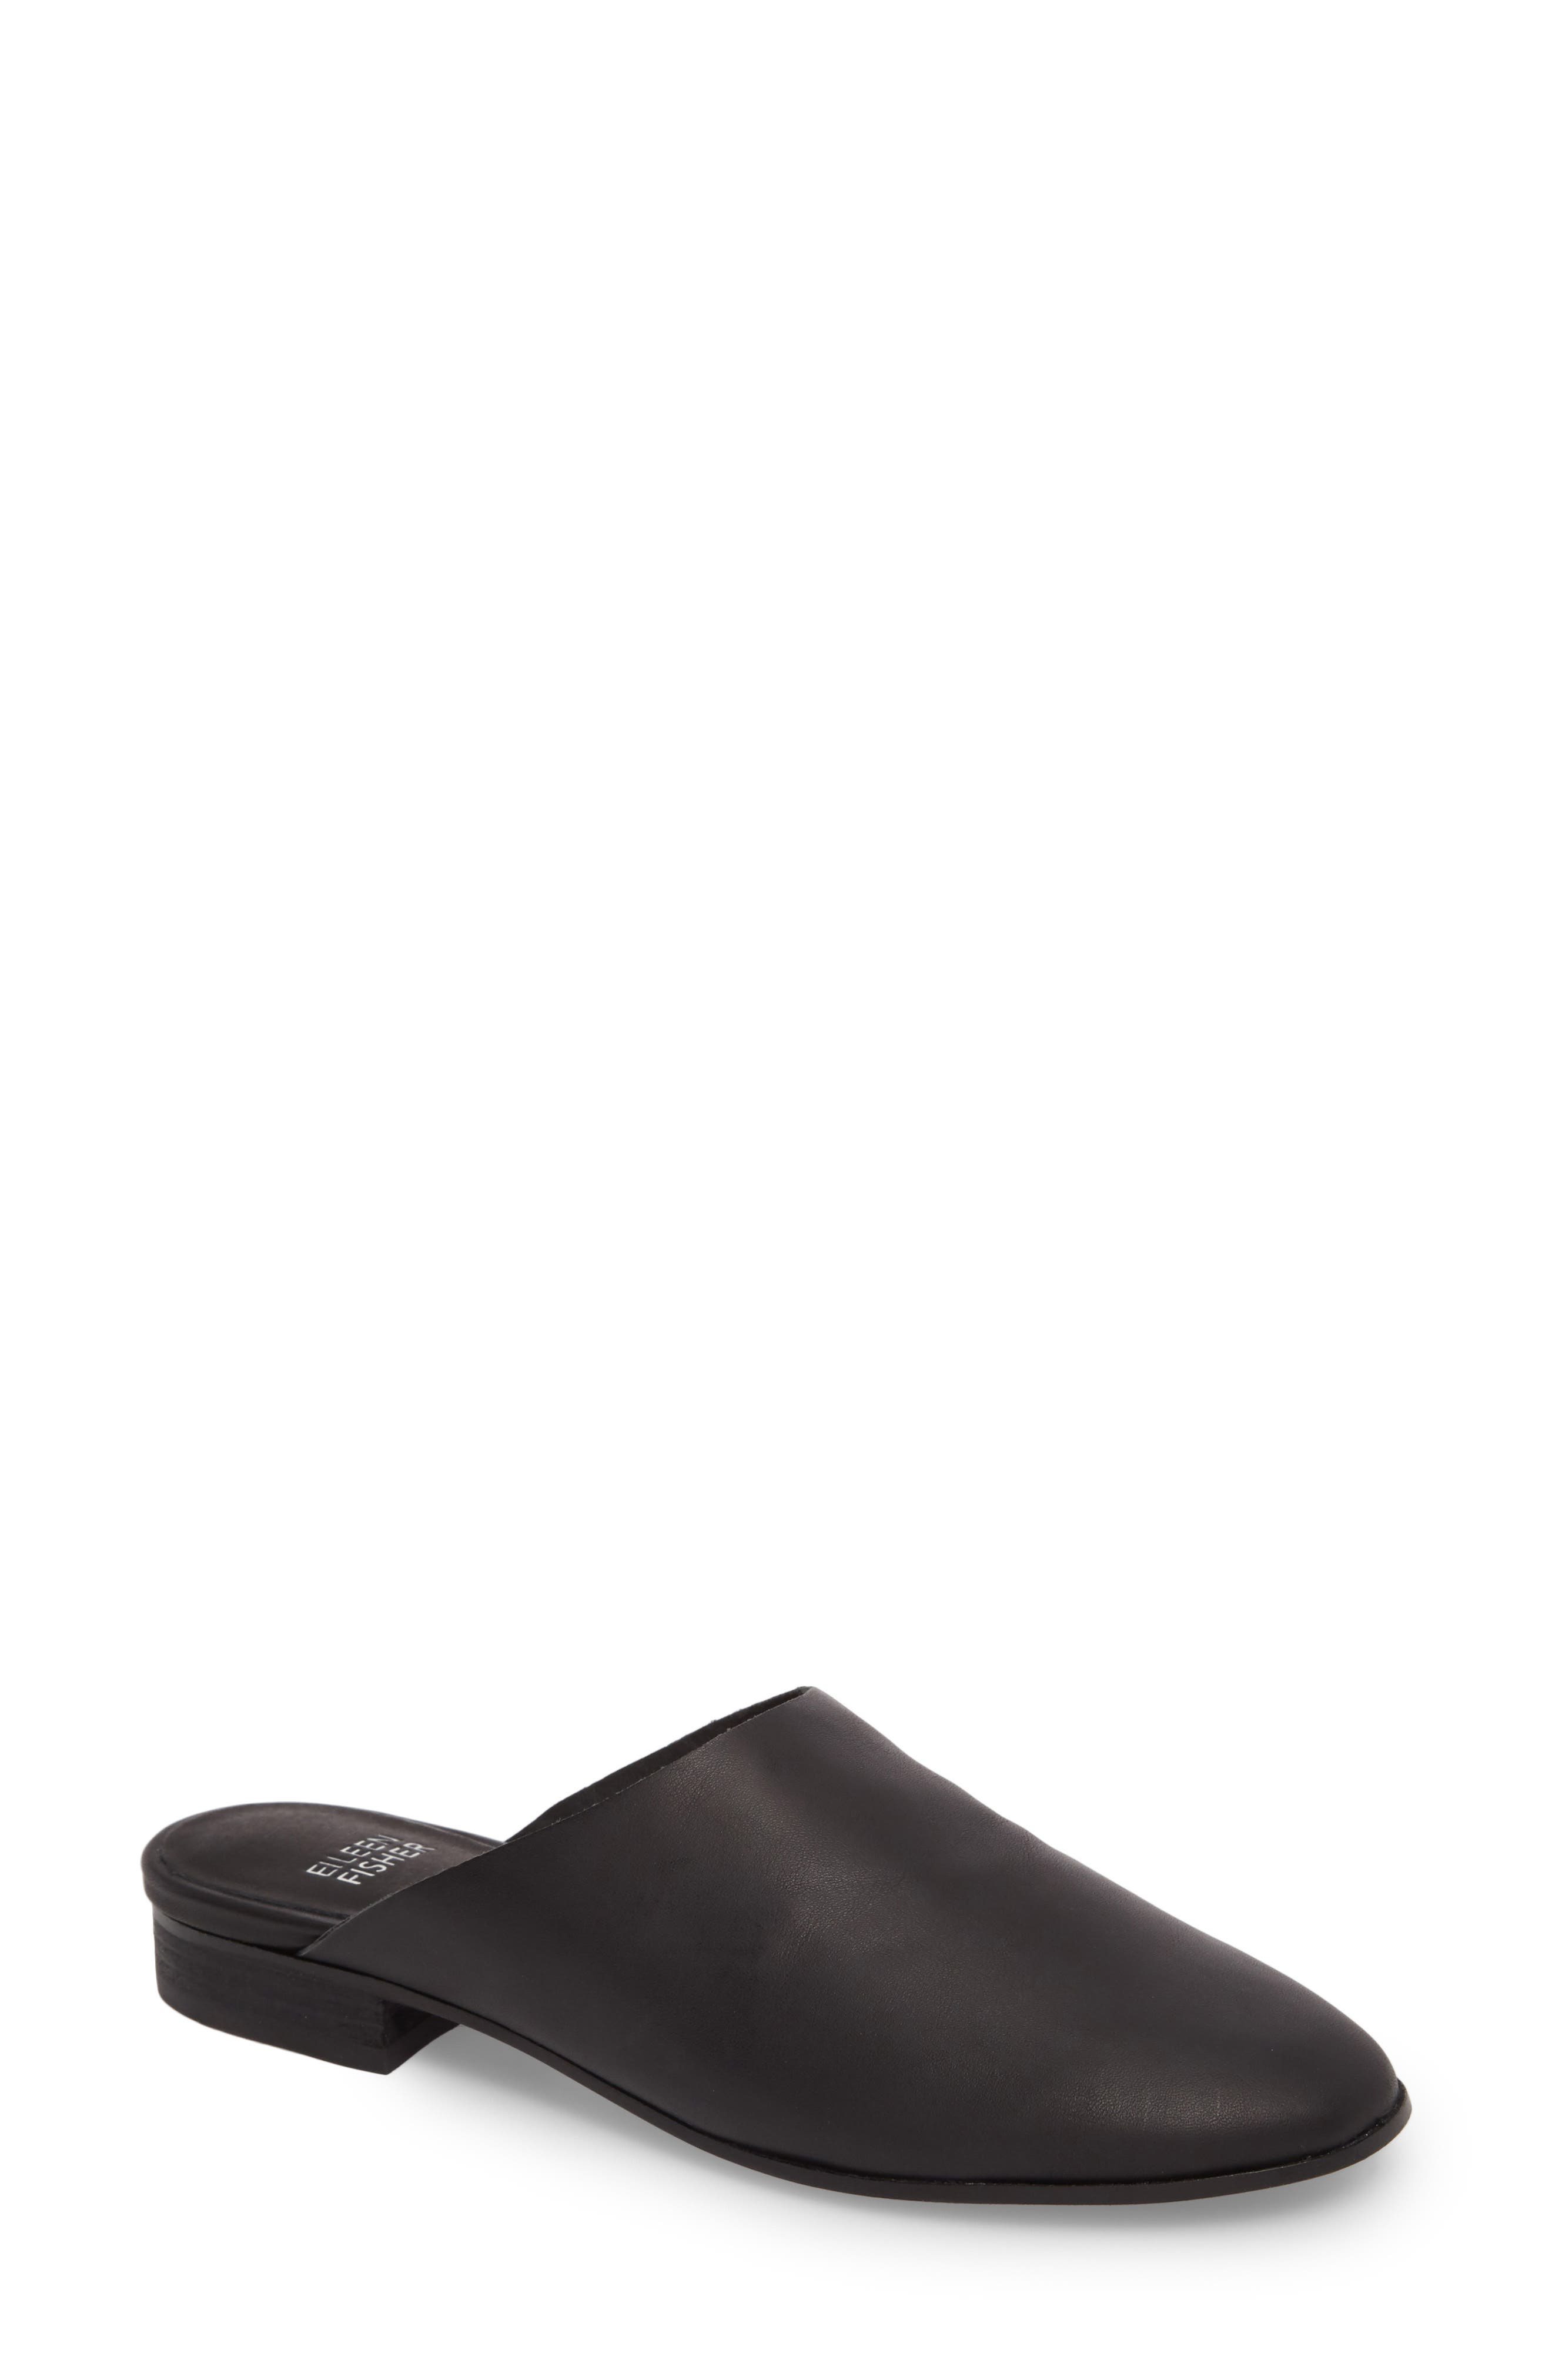 Main Image - Eileen Fisher Gwen Mule (Women)